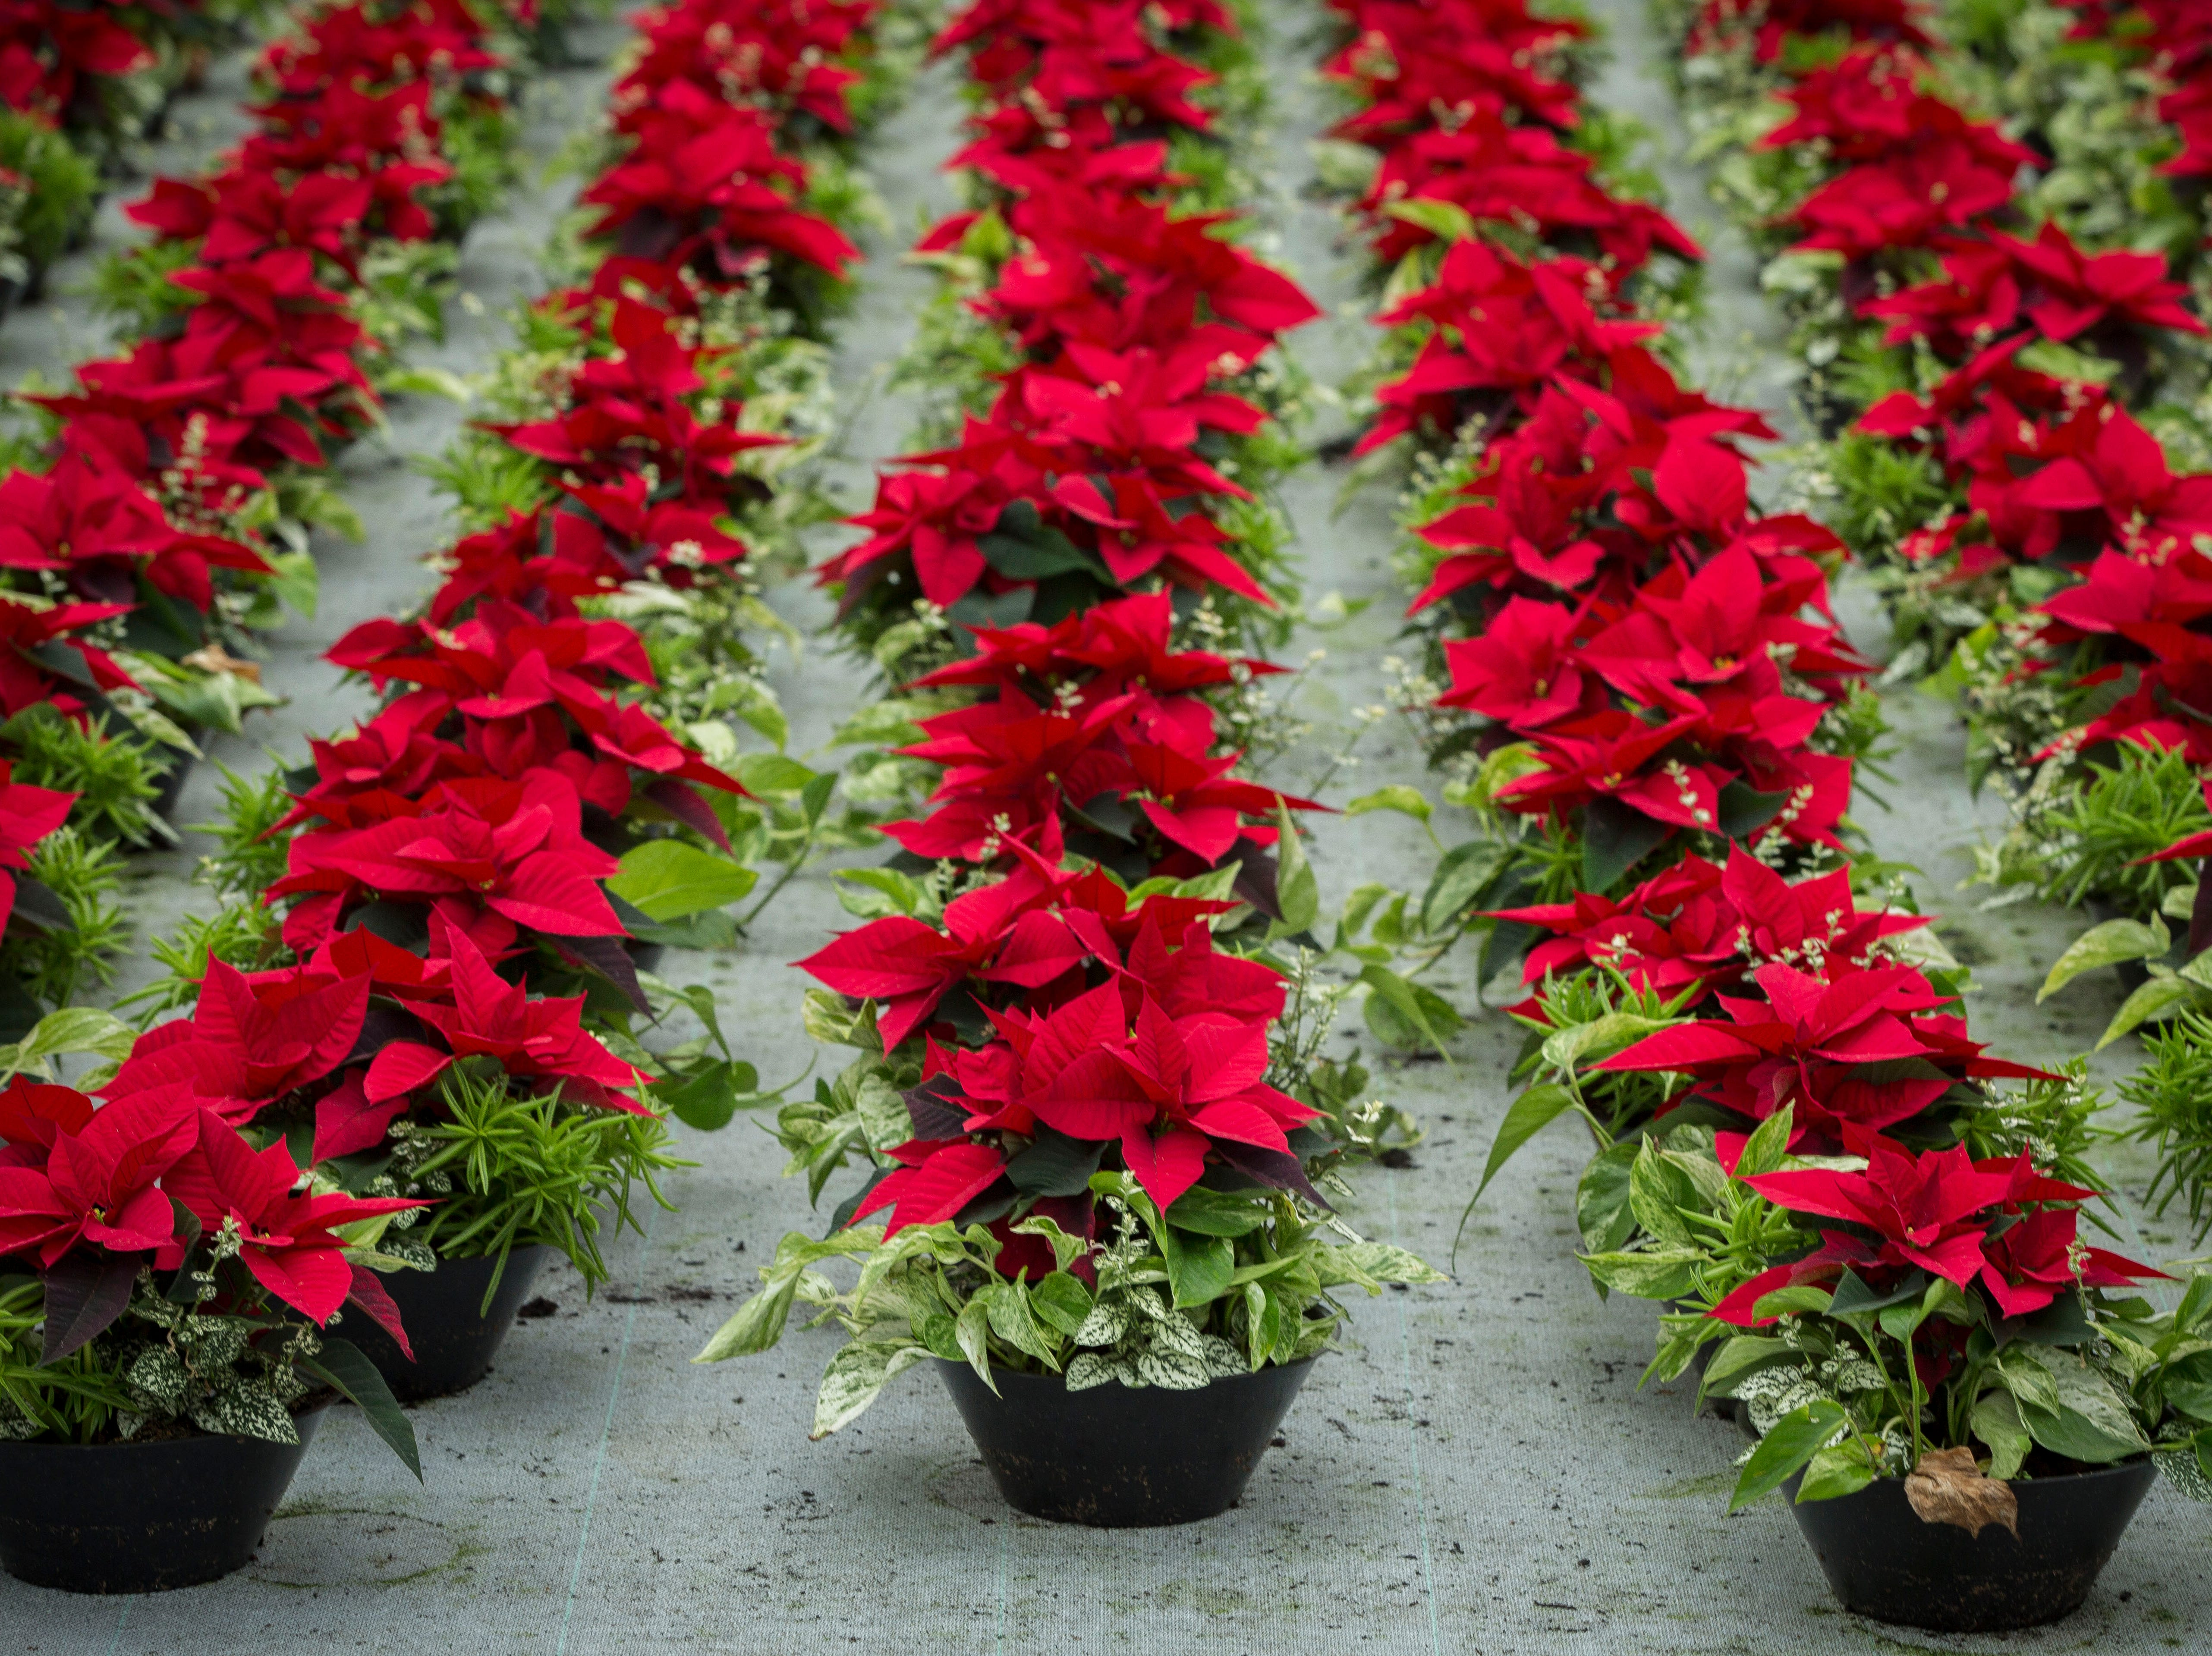 A traditional 1.5 quart red poinsettia plant is ready for packaging at Smith Gardens in Aurora, Oregon Friday November, 30, 2018. The plants will be packaged for one of the last shipments of the year in early December and be delivered to local big box stores.